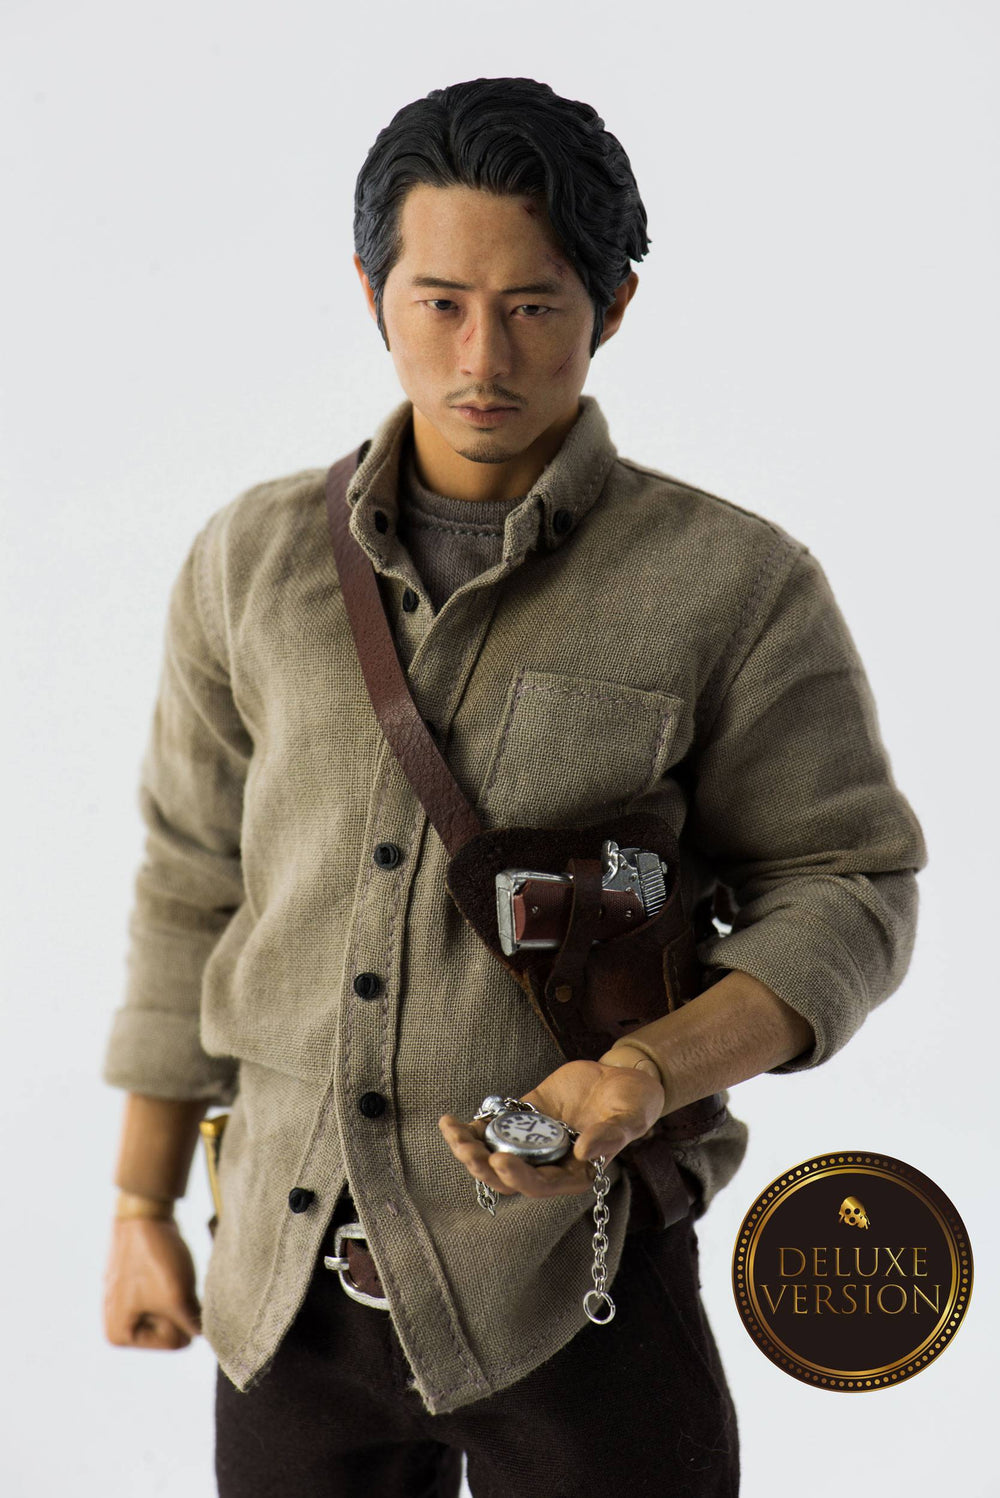 Threezero The Walking Dead Glenn Rhee Deluxe Version 1/6 Action Figure